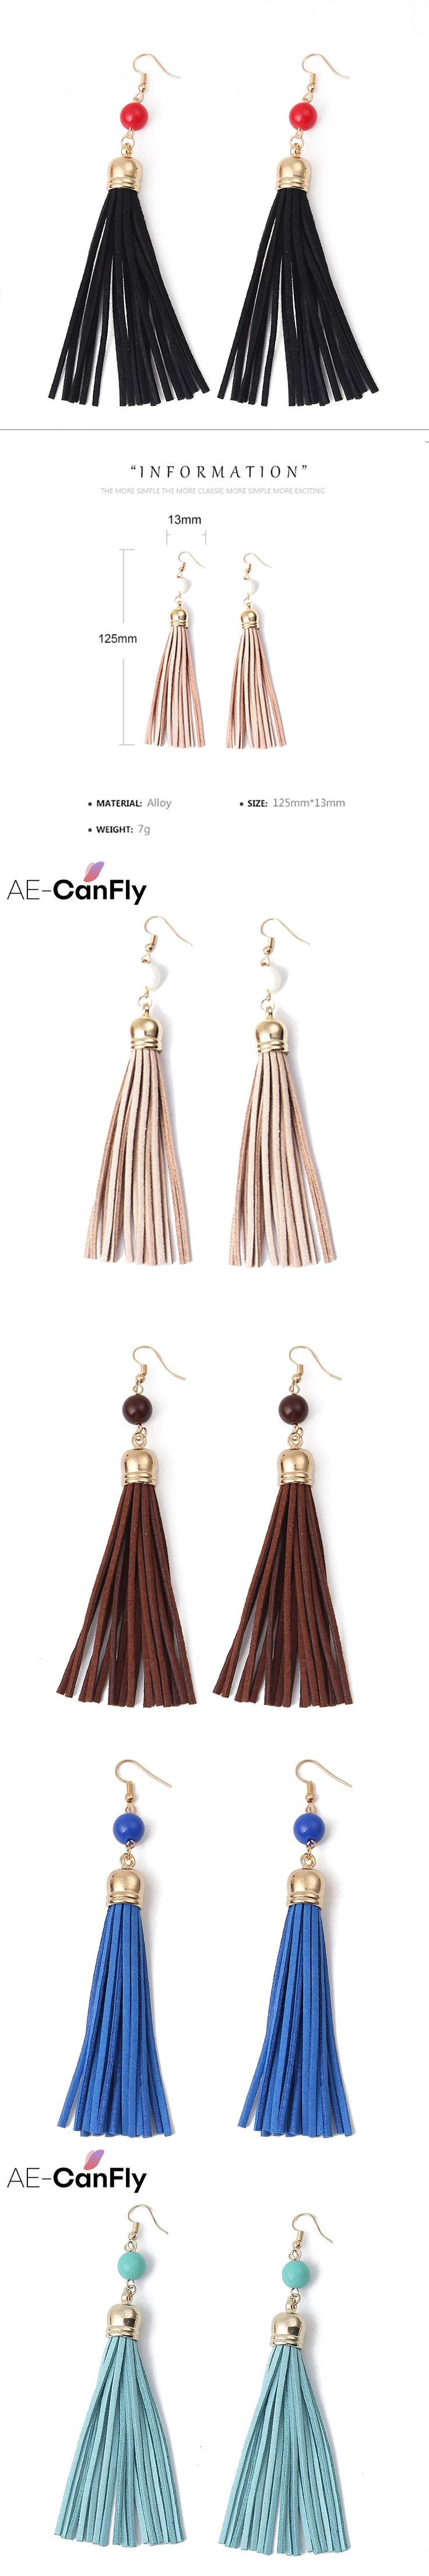 AE-CanFly Brand Newest Long Tassel Earring Faux Suede Fabric Dangle Drop Earring for Women Ear Jewelry 5 Colors 1I2013